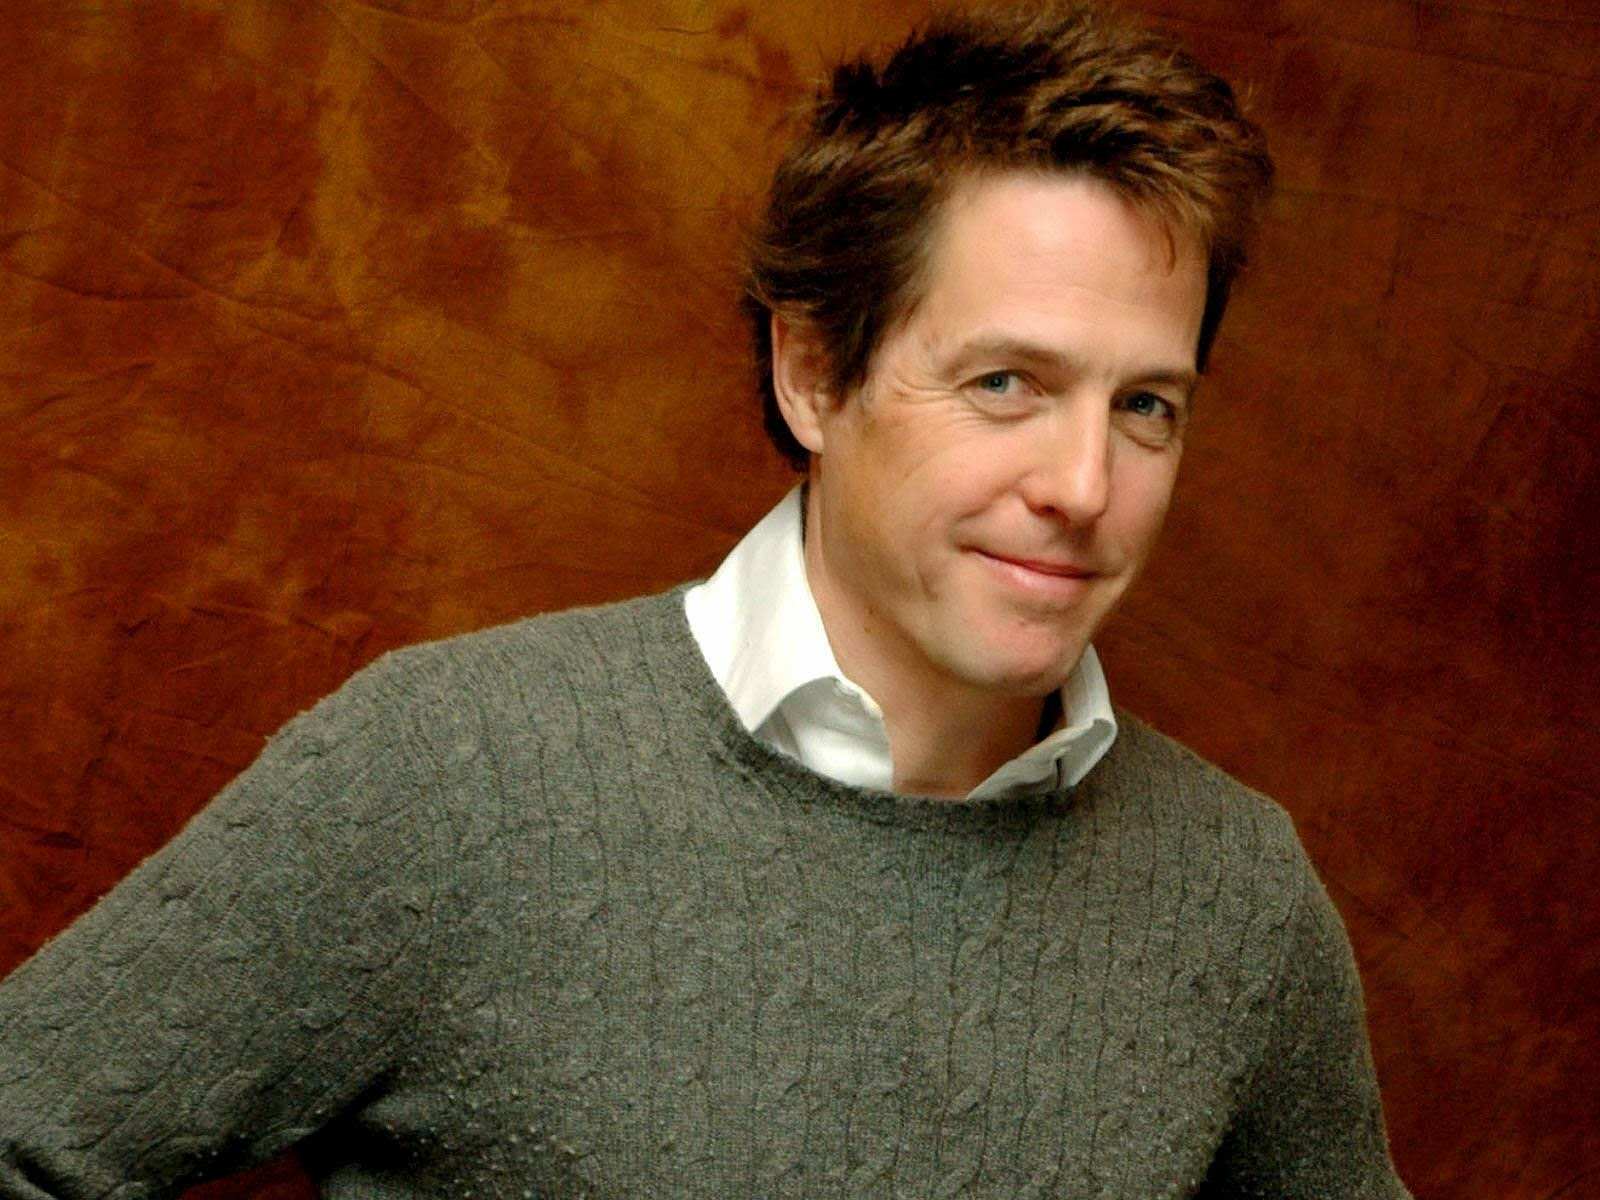 Hugh Grant Wallpaper